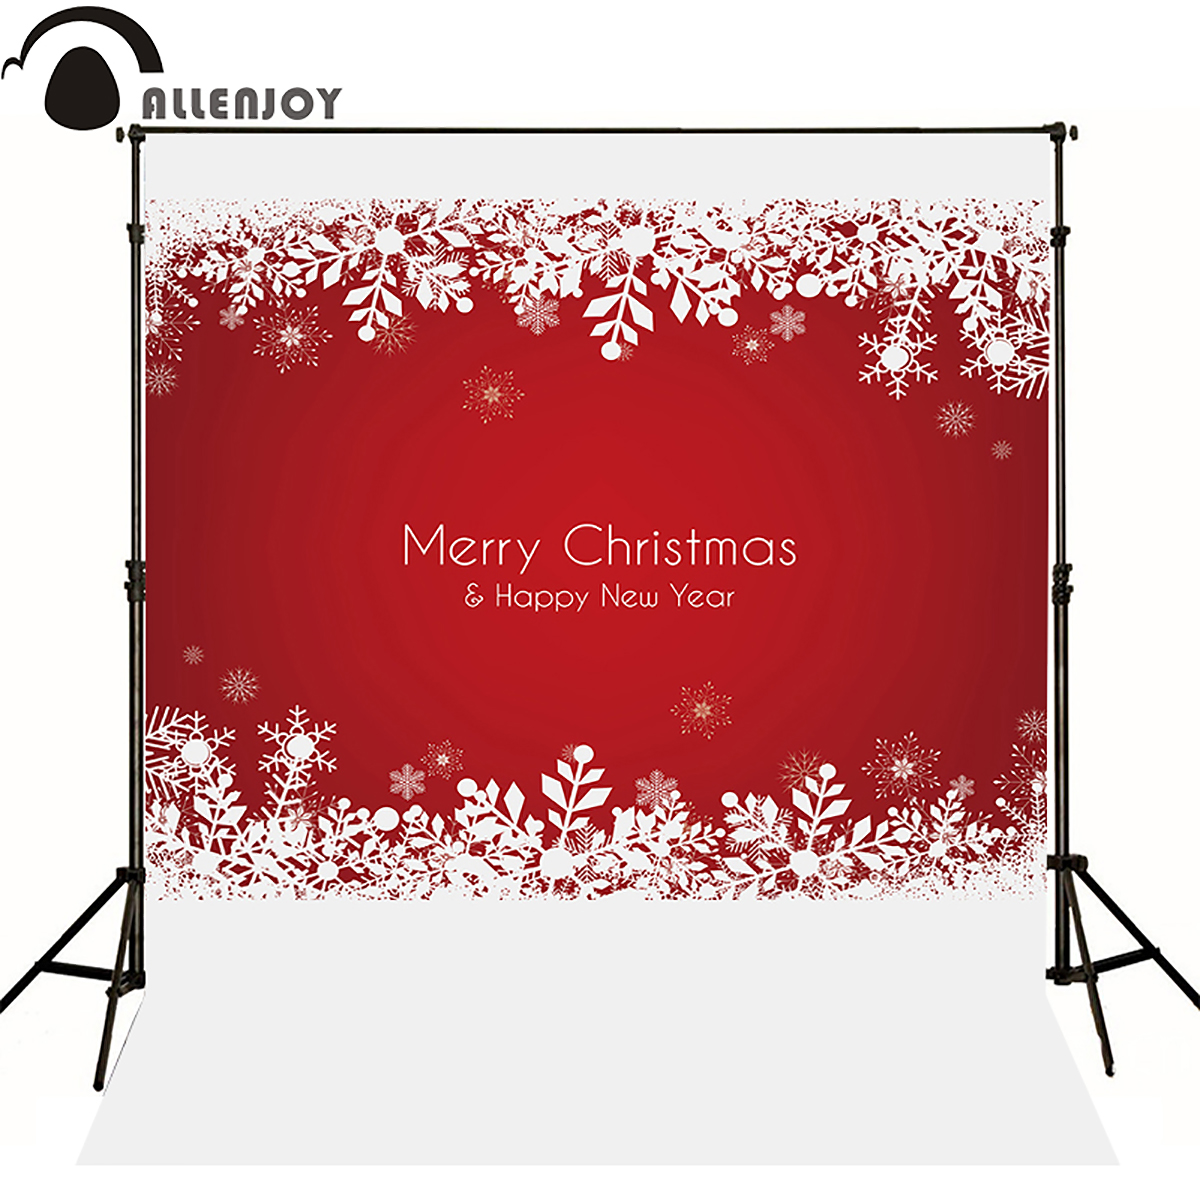 Allen Joy Christmas Photography Backdrops New Year Winter Red Xmas Copper Clad Boards 10x15cm 100x150x12mm High Quality For Circuit Pcb Snowflake Newborn Baby Shower Snow Background Photocall